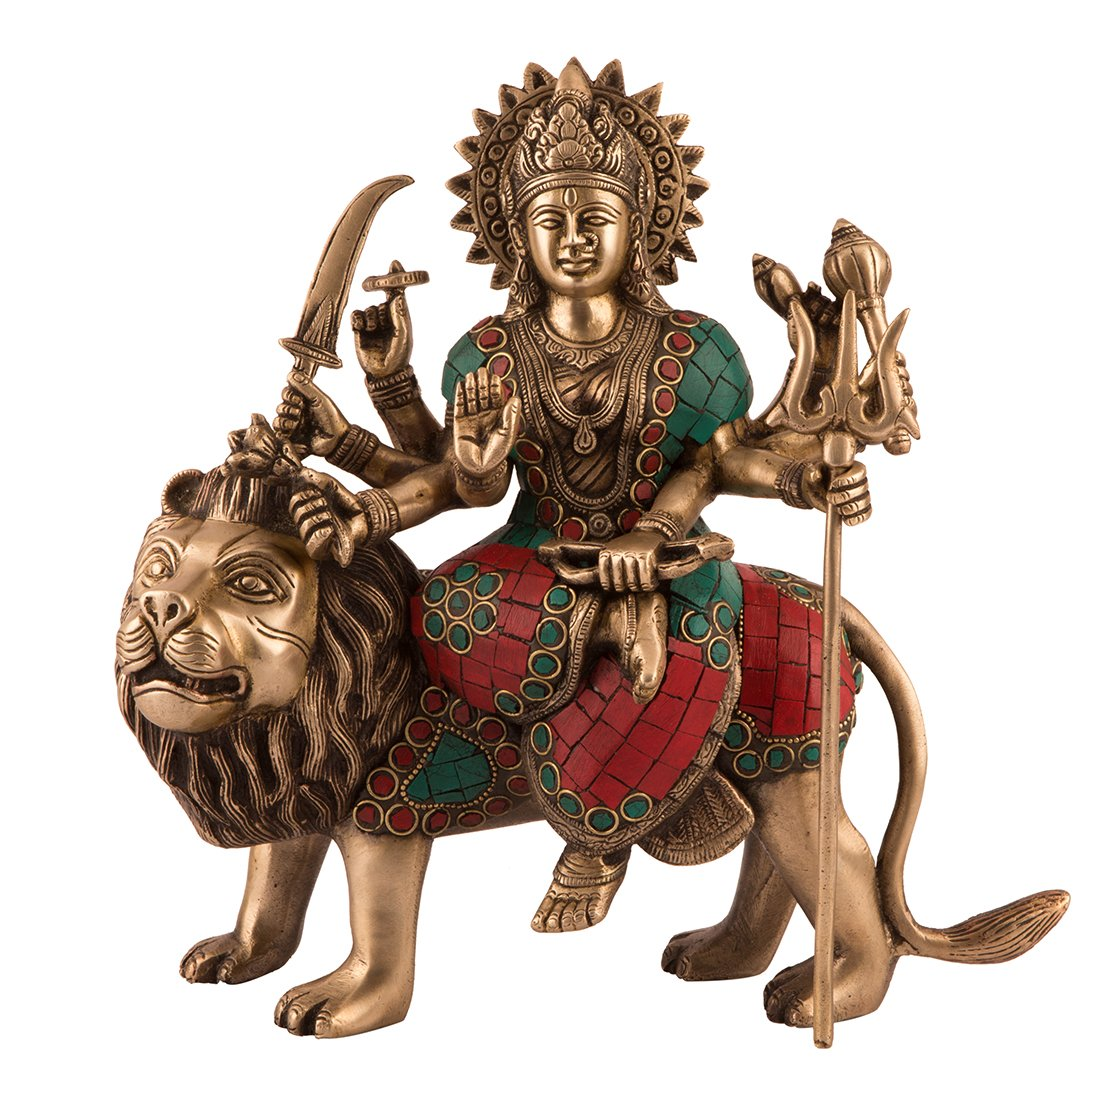 CraftVatika Durga Statue Hindu Goddess Brass Sculpture Maa Durga Kali Devi Lion Figurine Decor Gift